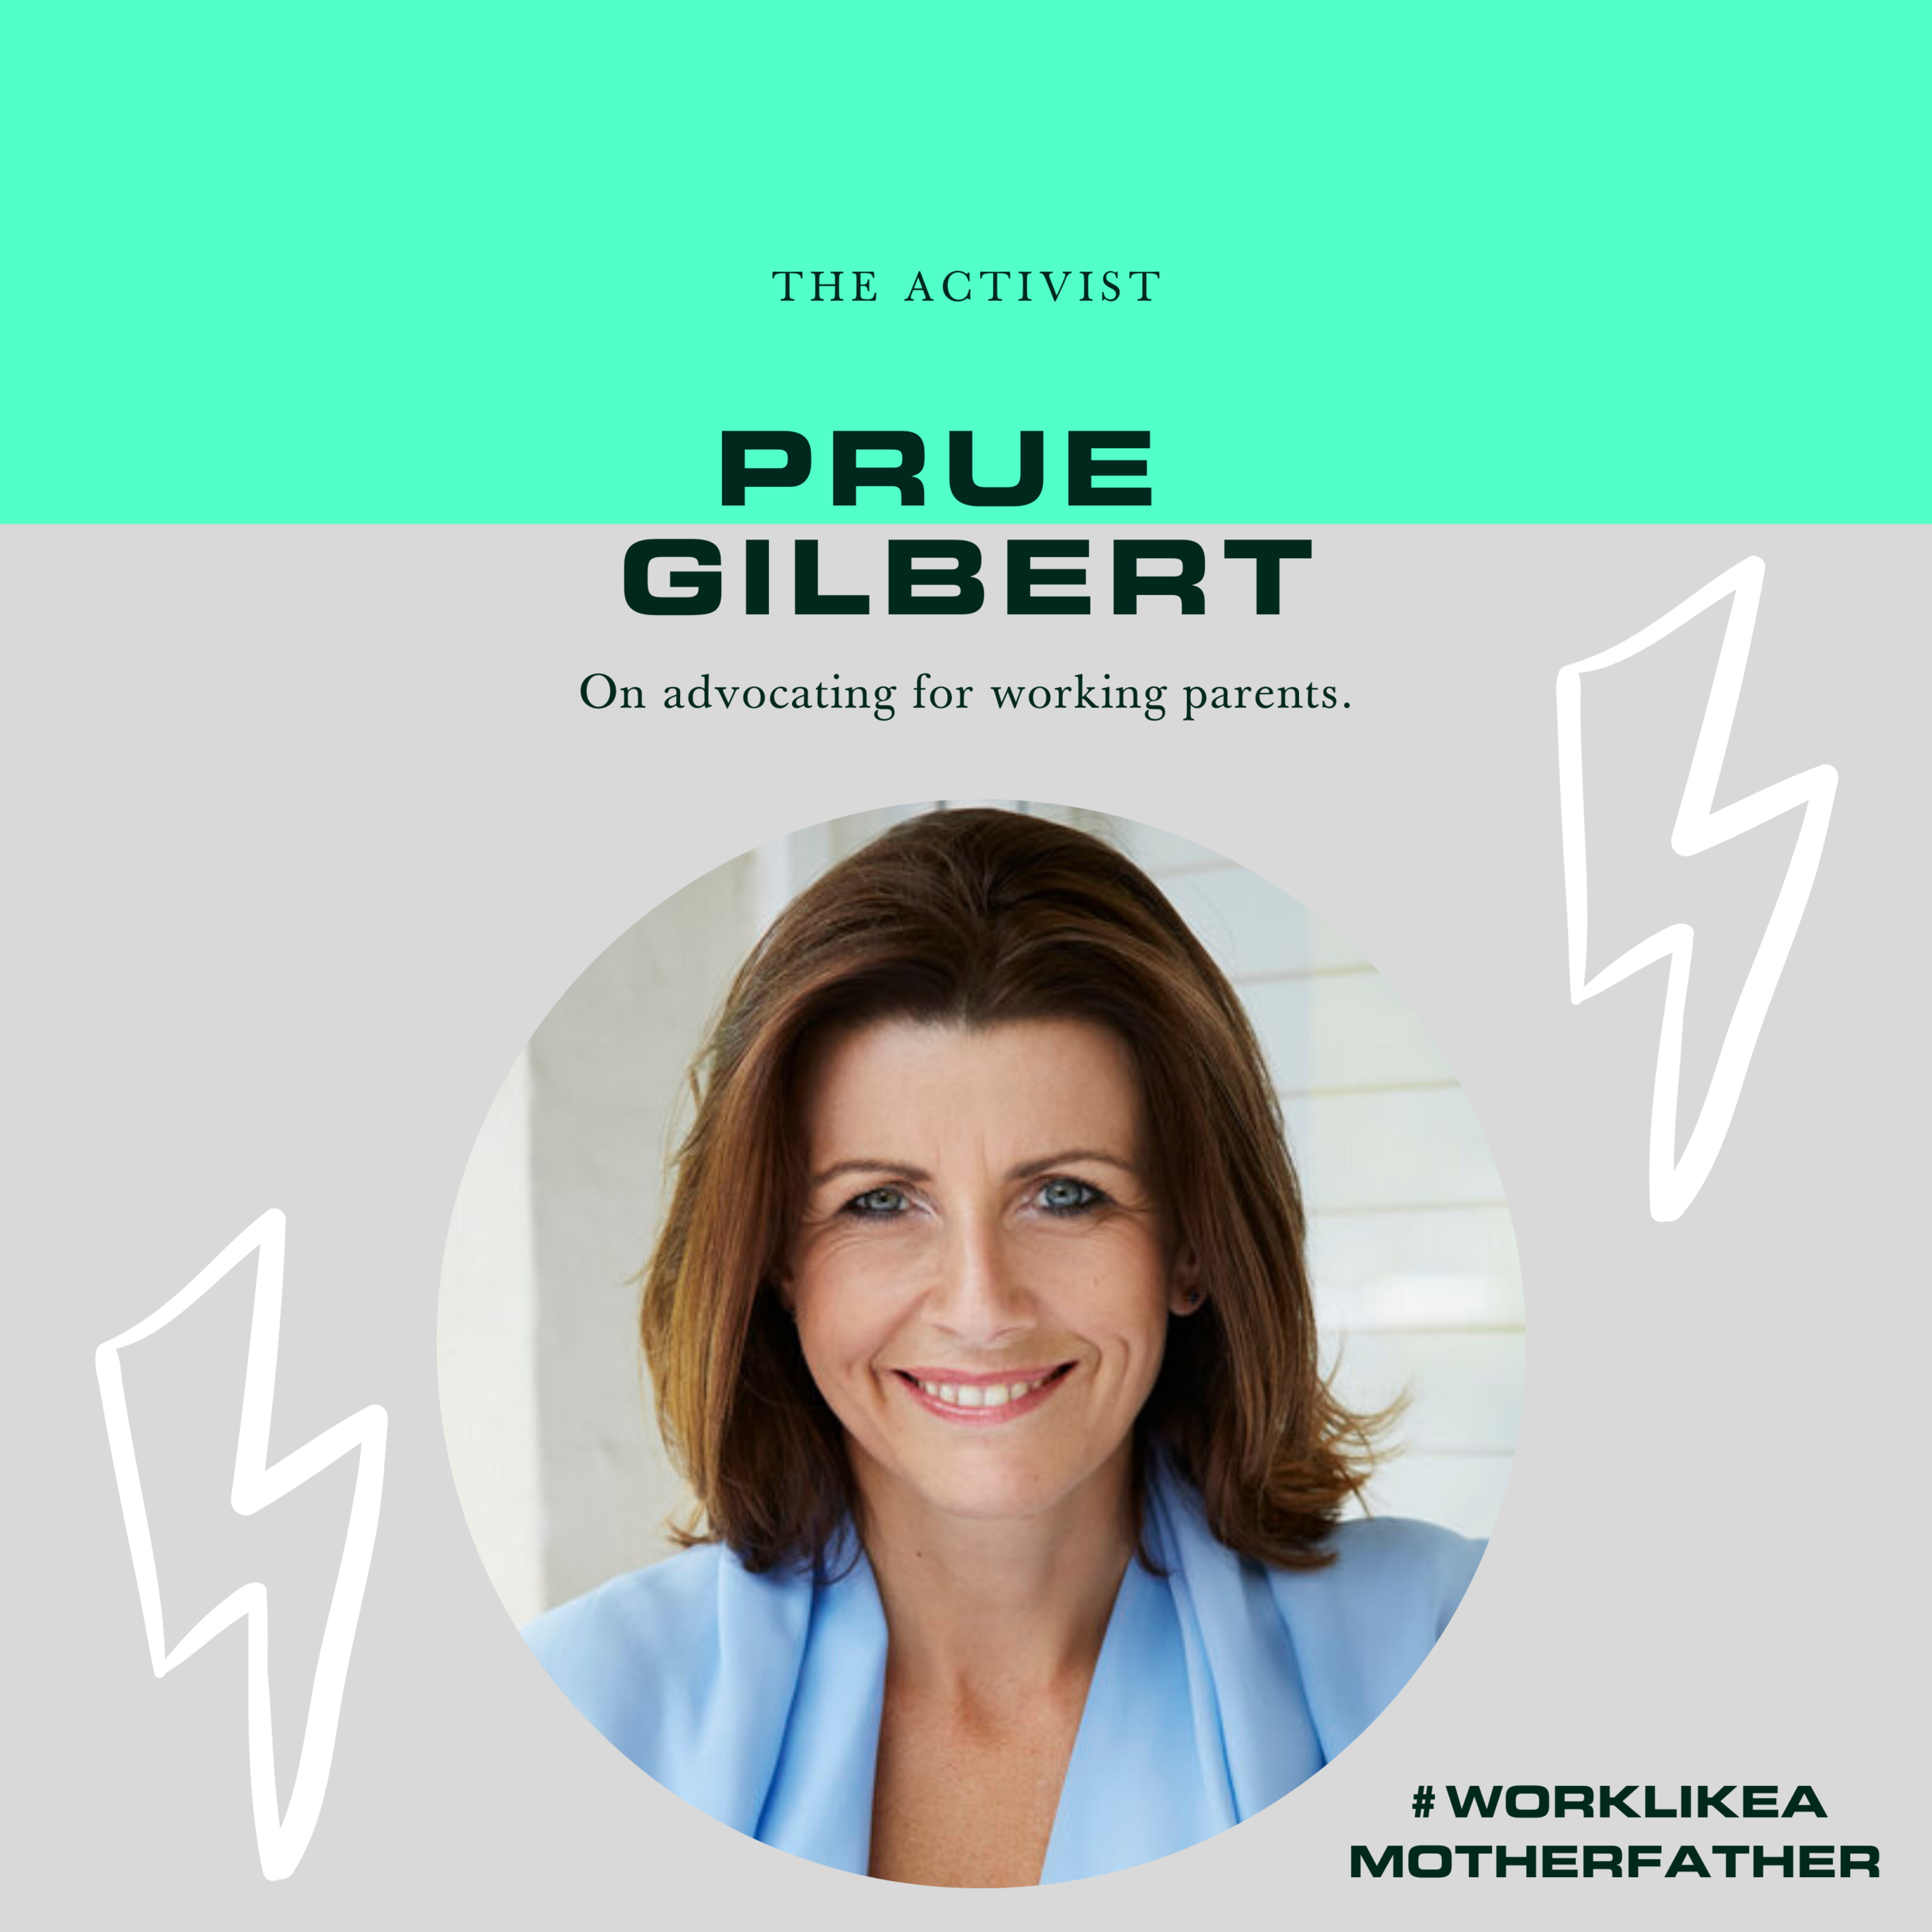 CEO Prue on podcast Work Like A Motherfather discussing diversity and equality in the workplace and the basics of understanding your rights as a working parent.